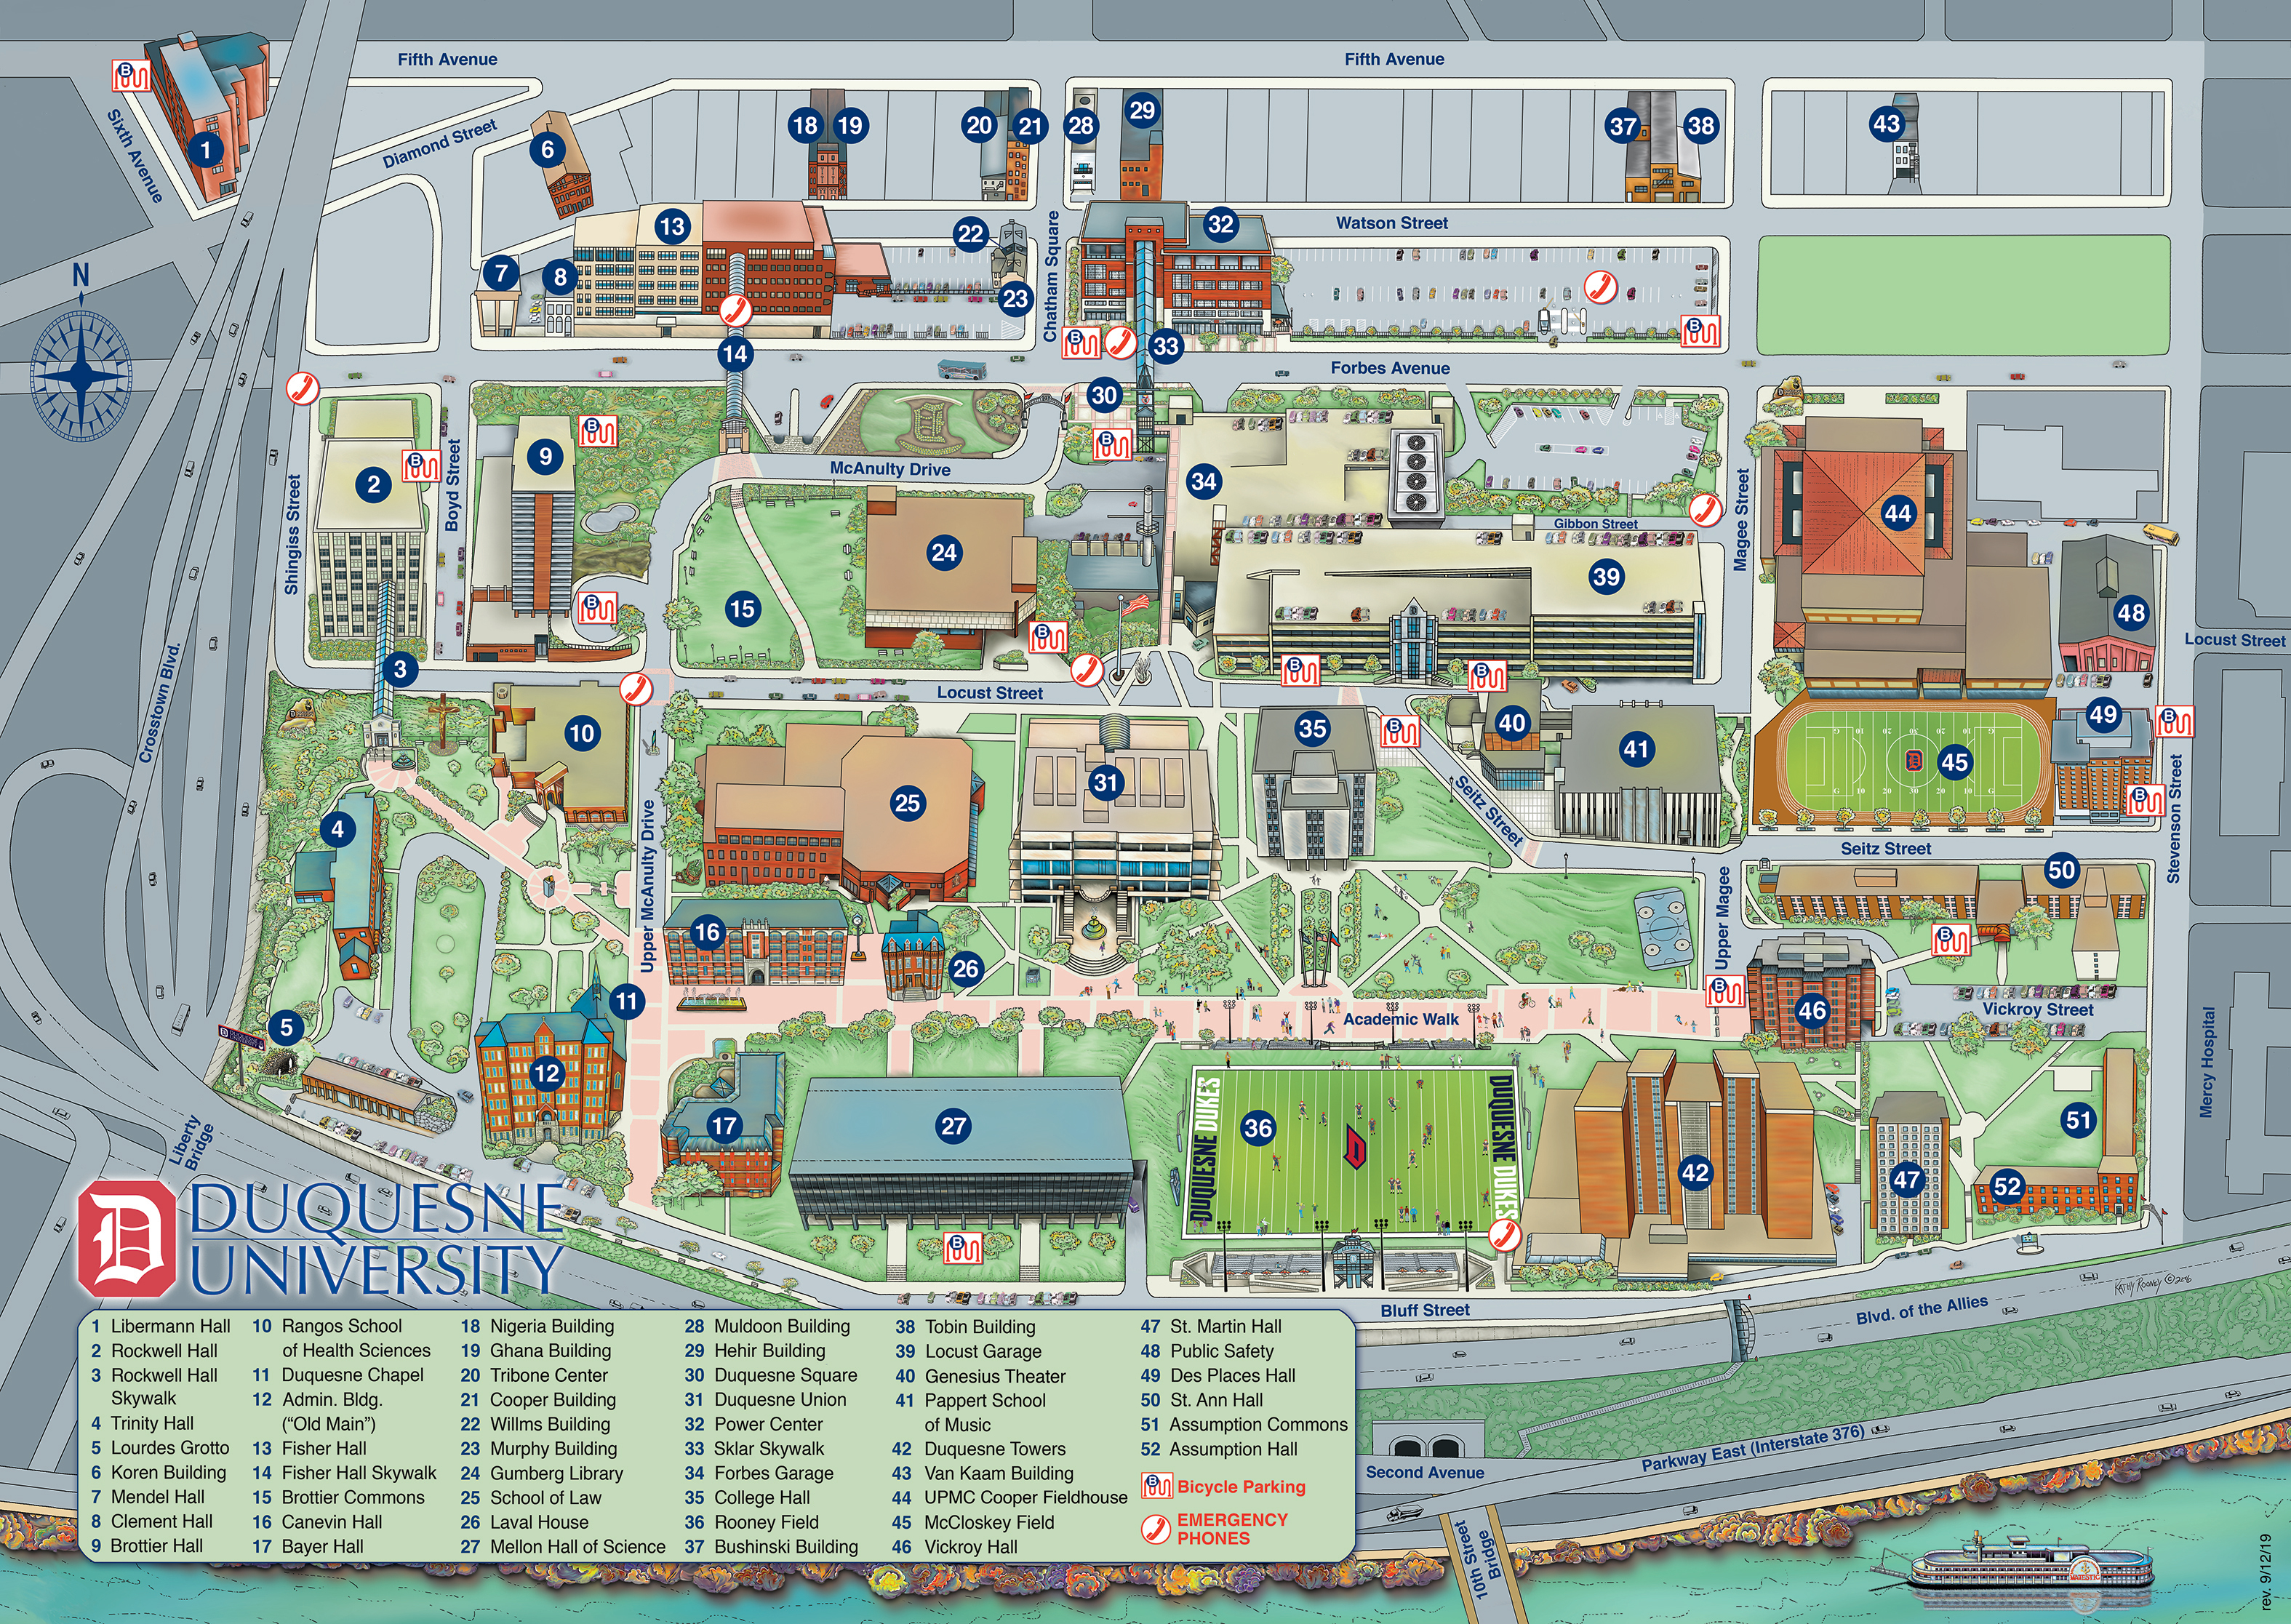 Campus Map and Directions | Duquesne University on custom map directions, basic map directions, teacher giving directions, google search, maps get directions, route planning software, yahoo! maps, web mapping, bing maps platform, maps used in foe, bing maps, get walking directions, print maps with directions, satellite map images with missing or unclear data, maps north ogden, asheville nc map directions, nokia maps, google latitude, maps live of my house, easy road map directions, driving directions, cardinal directions, mapquest directions, maps google maps, maps distances ohio-indiana, google earth, maps puerto rico drivers, maps of seven deadly sins in america, follow directions, google voice, google map maker, maps espanol,